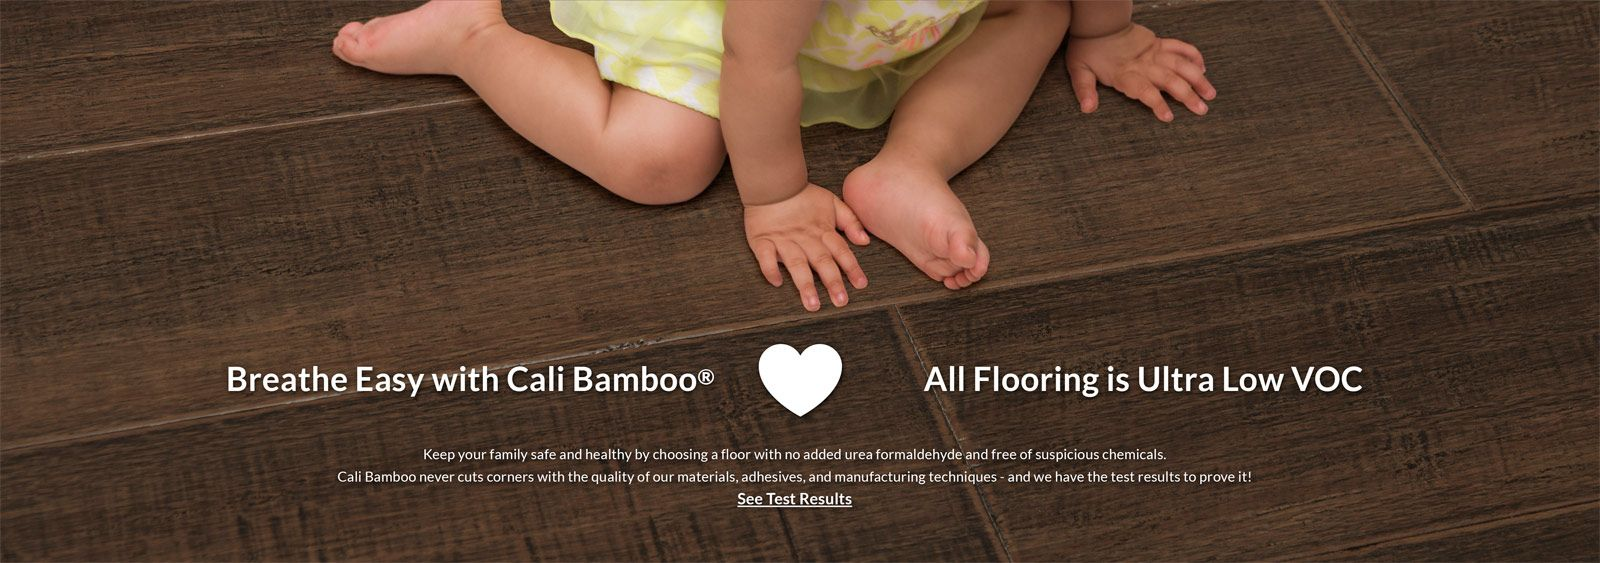 Low VOC Flooring Breathe Easy with Cali Bamboo